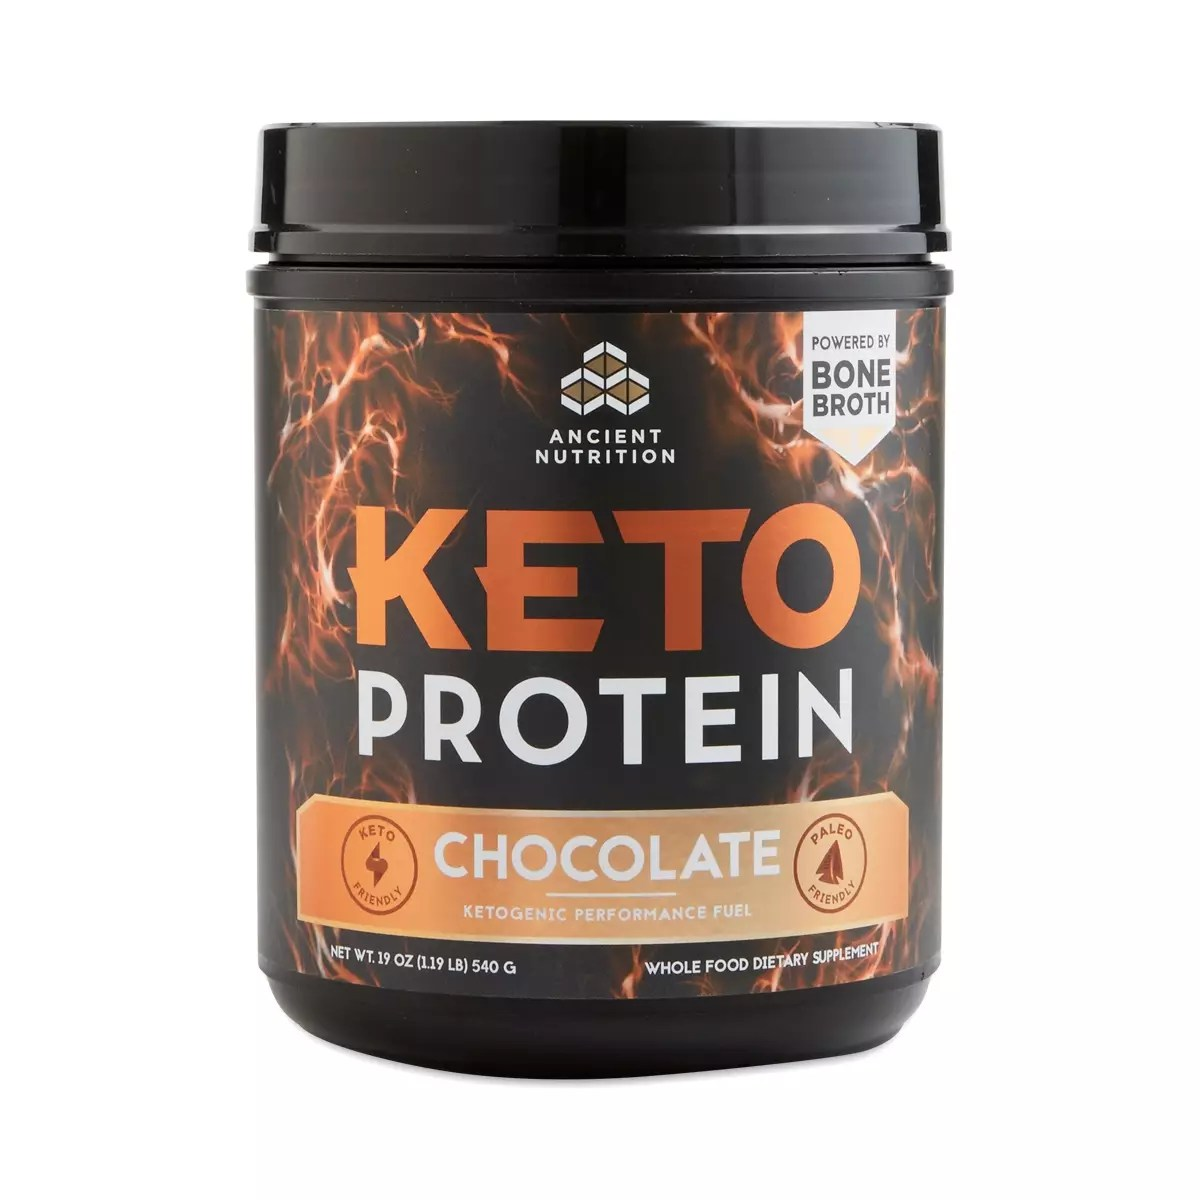 Keto PROTEIN Chocolate by Ancient Nutrition  Thrive Market